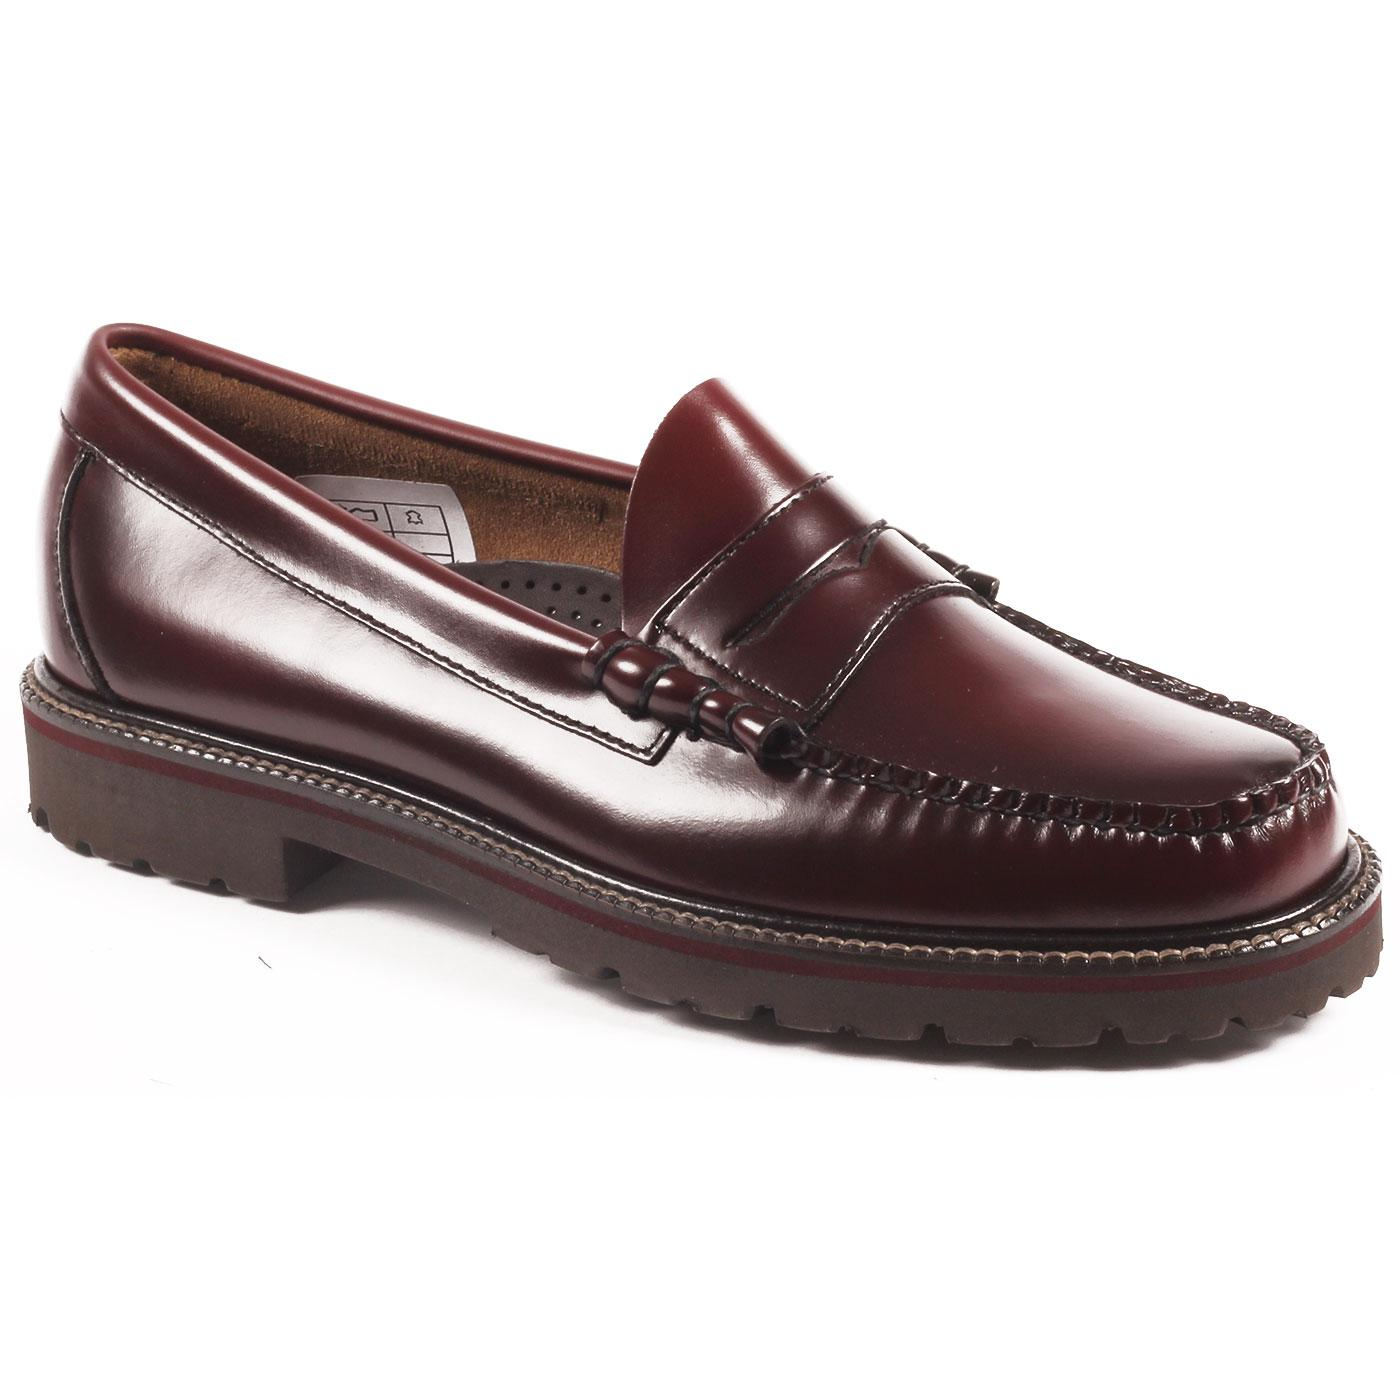 Larson Weejun 90 BASS WEEJUNS Mod Penny Loafers W